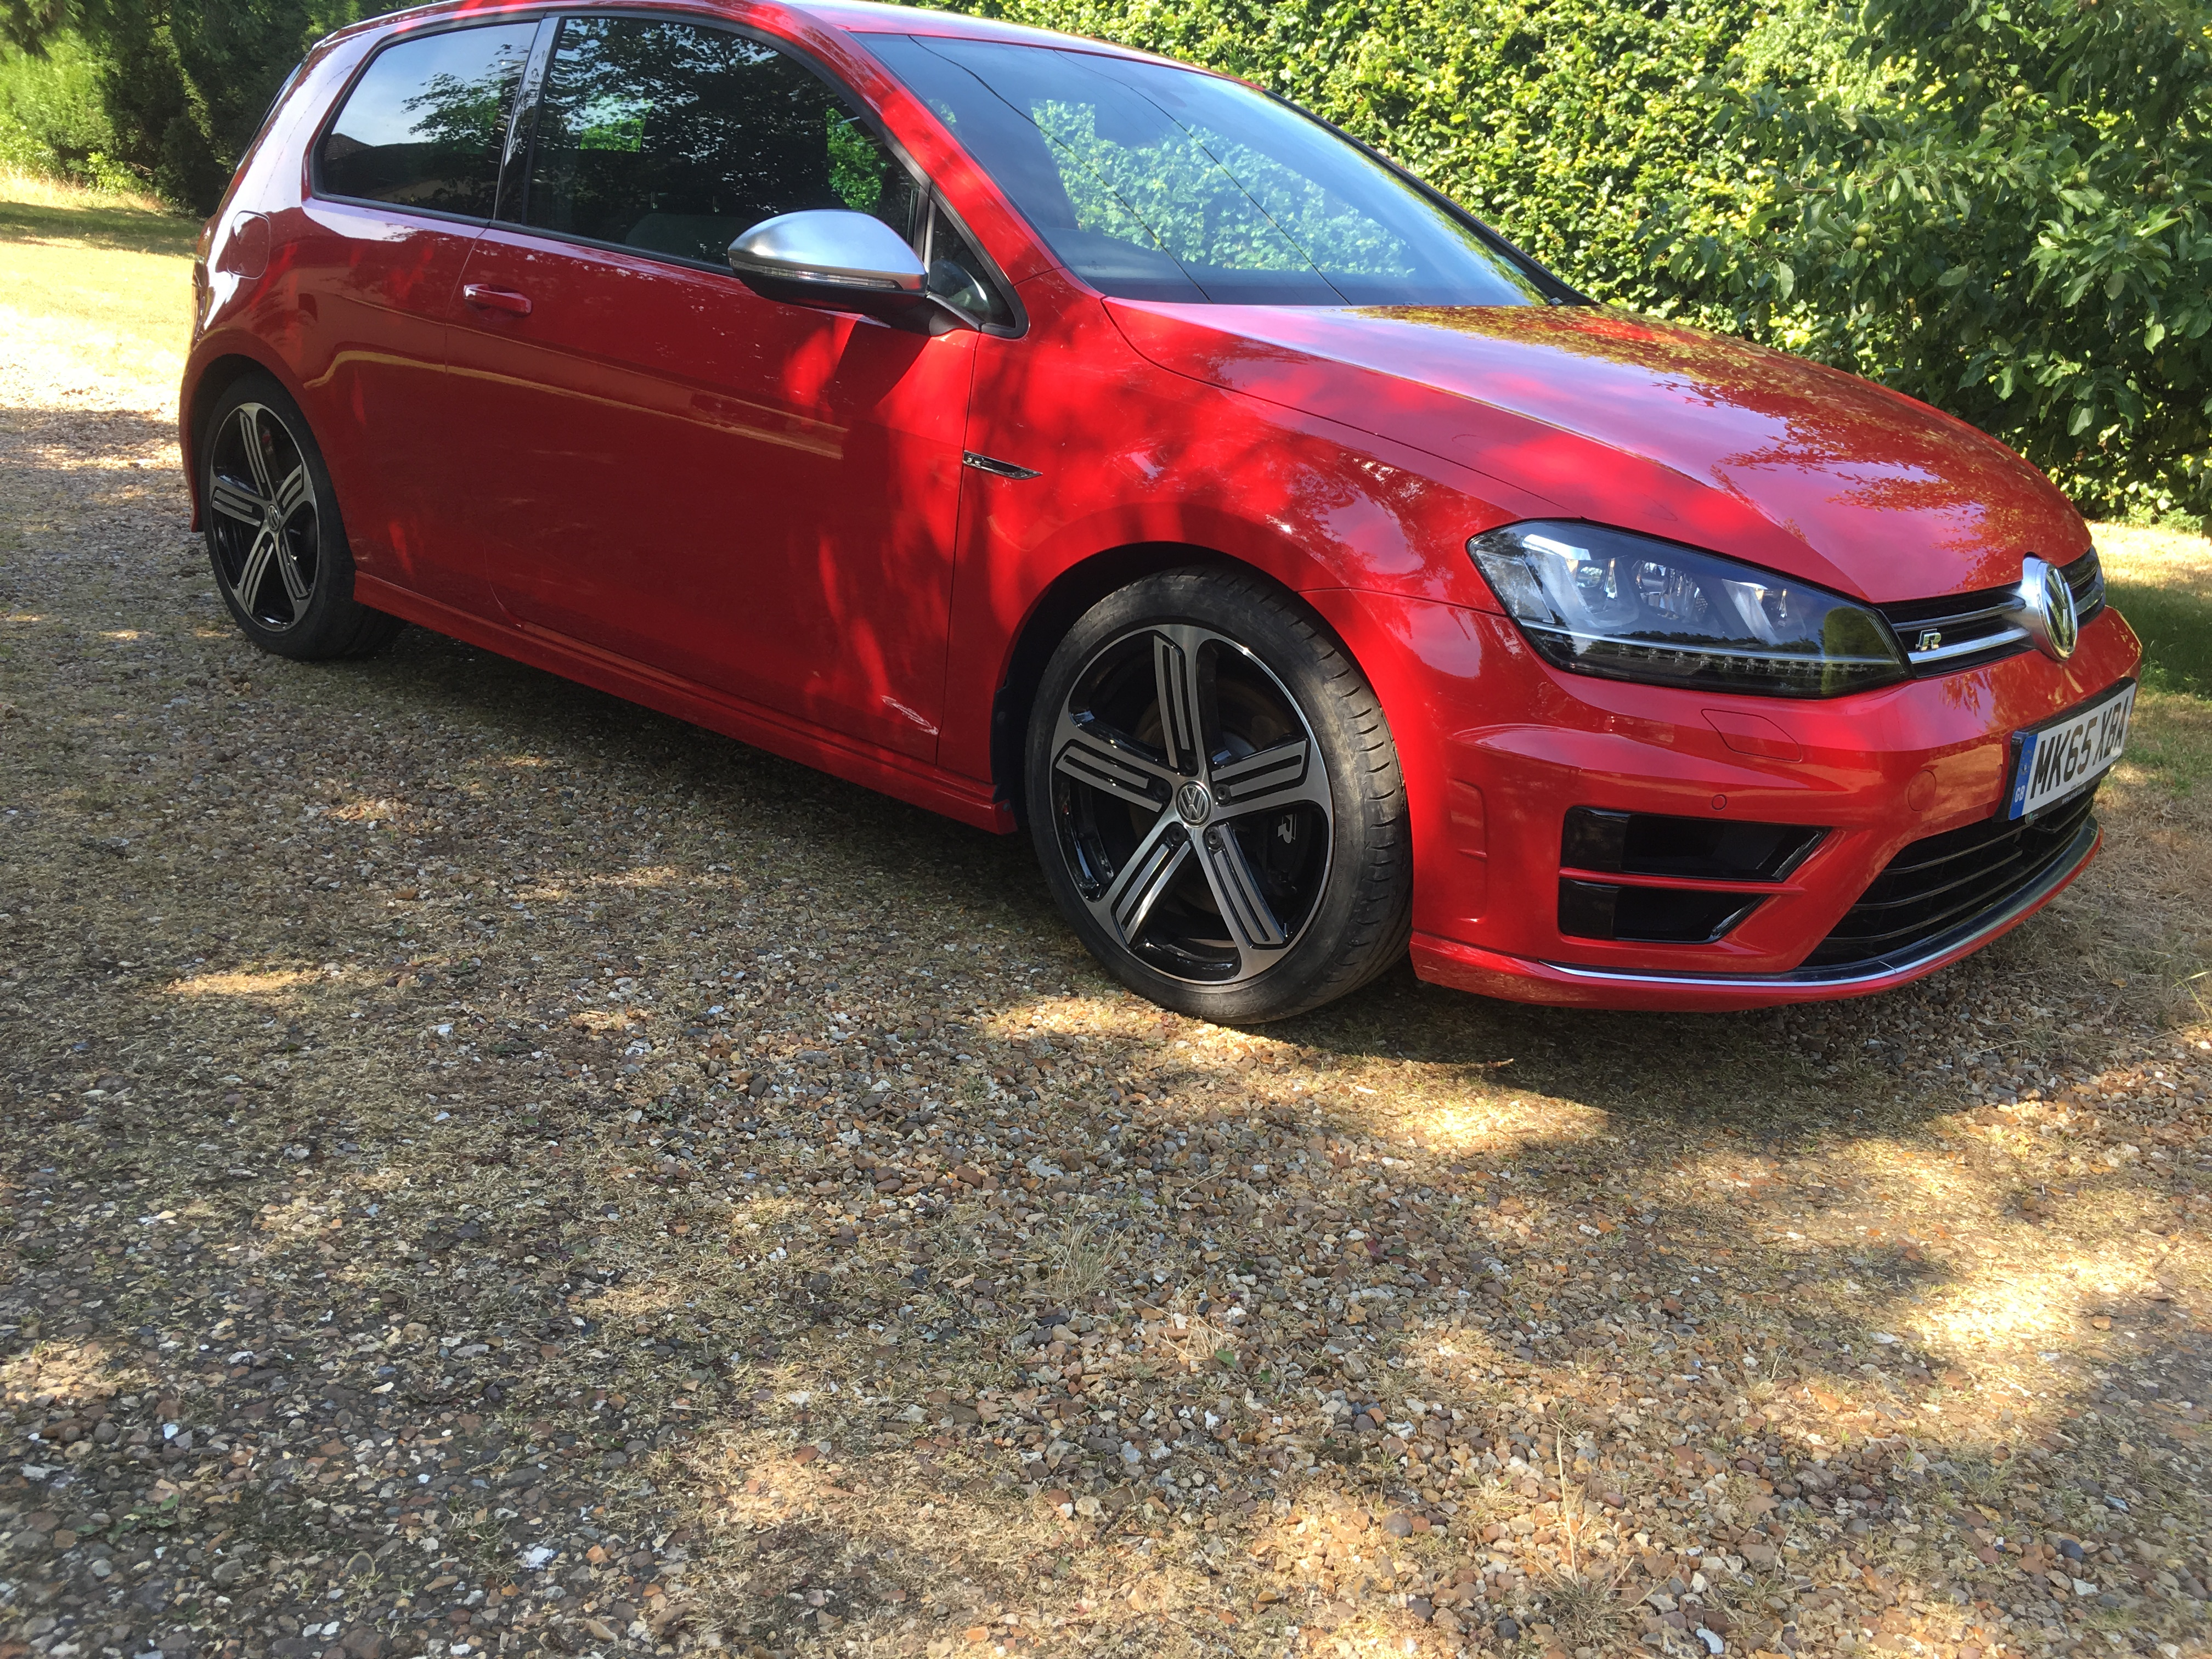 Volkswagen Golf R 2.0TSI 3dr 6 speed manual 296bhp 4wd Dec 2015 10K miles superb £20495